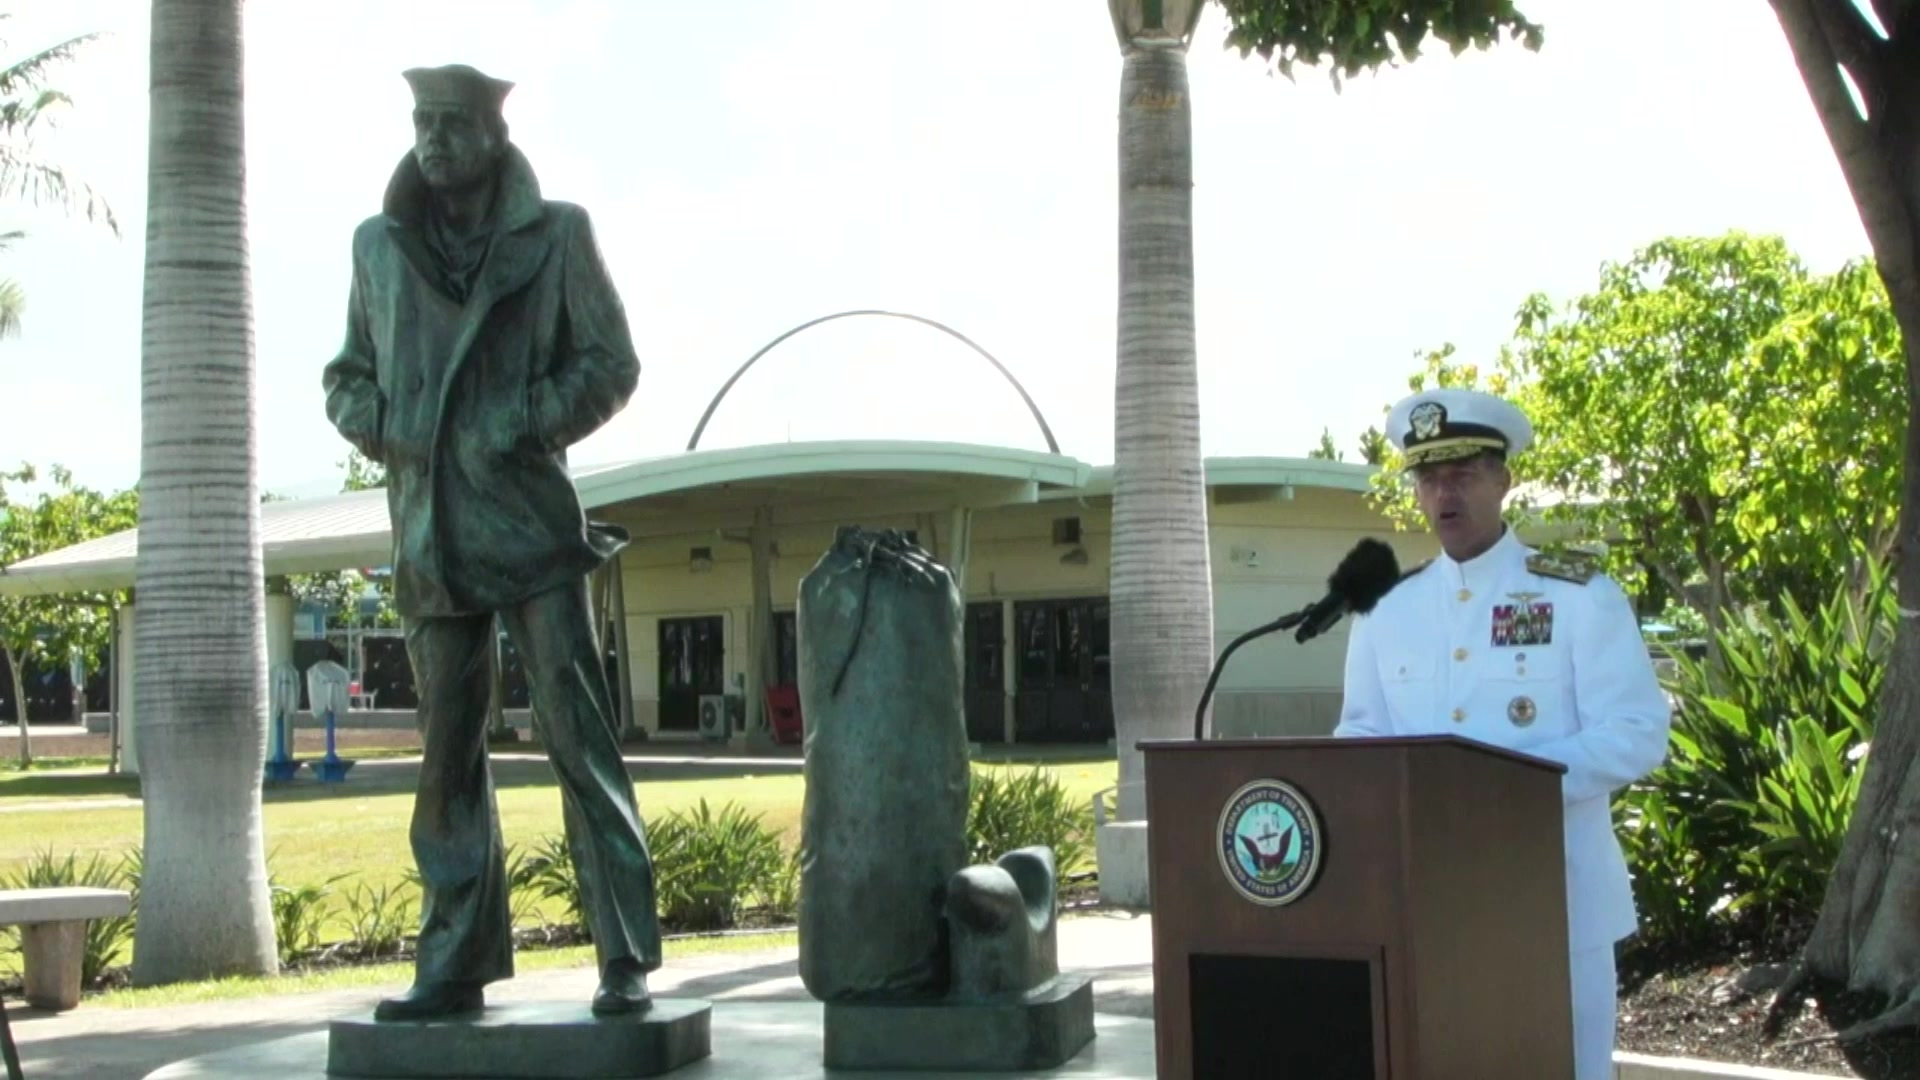 A sailor speaks at a lectern outside.